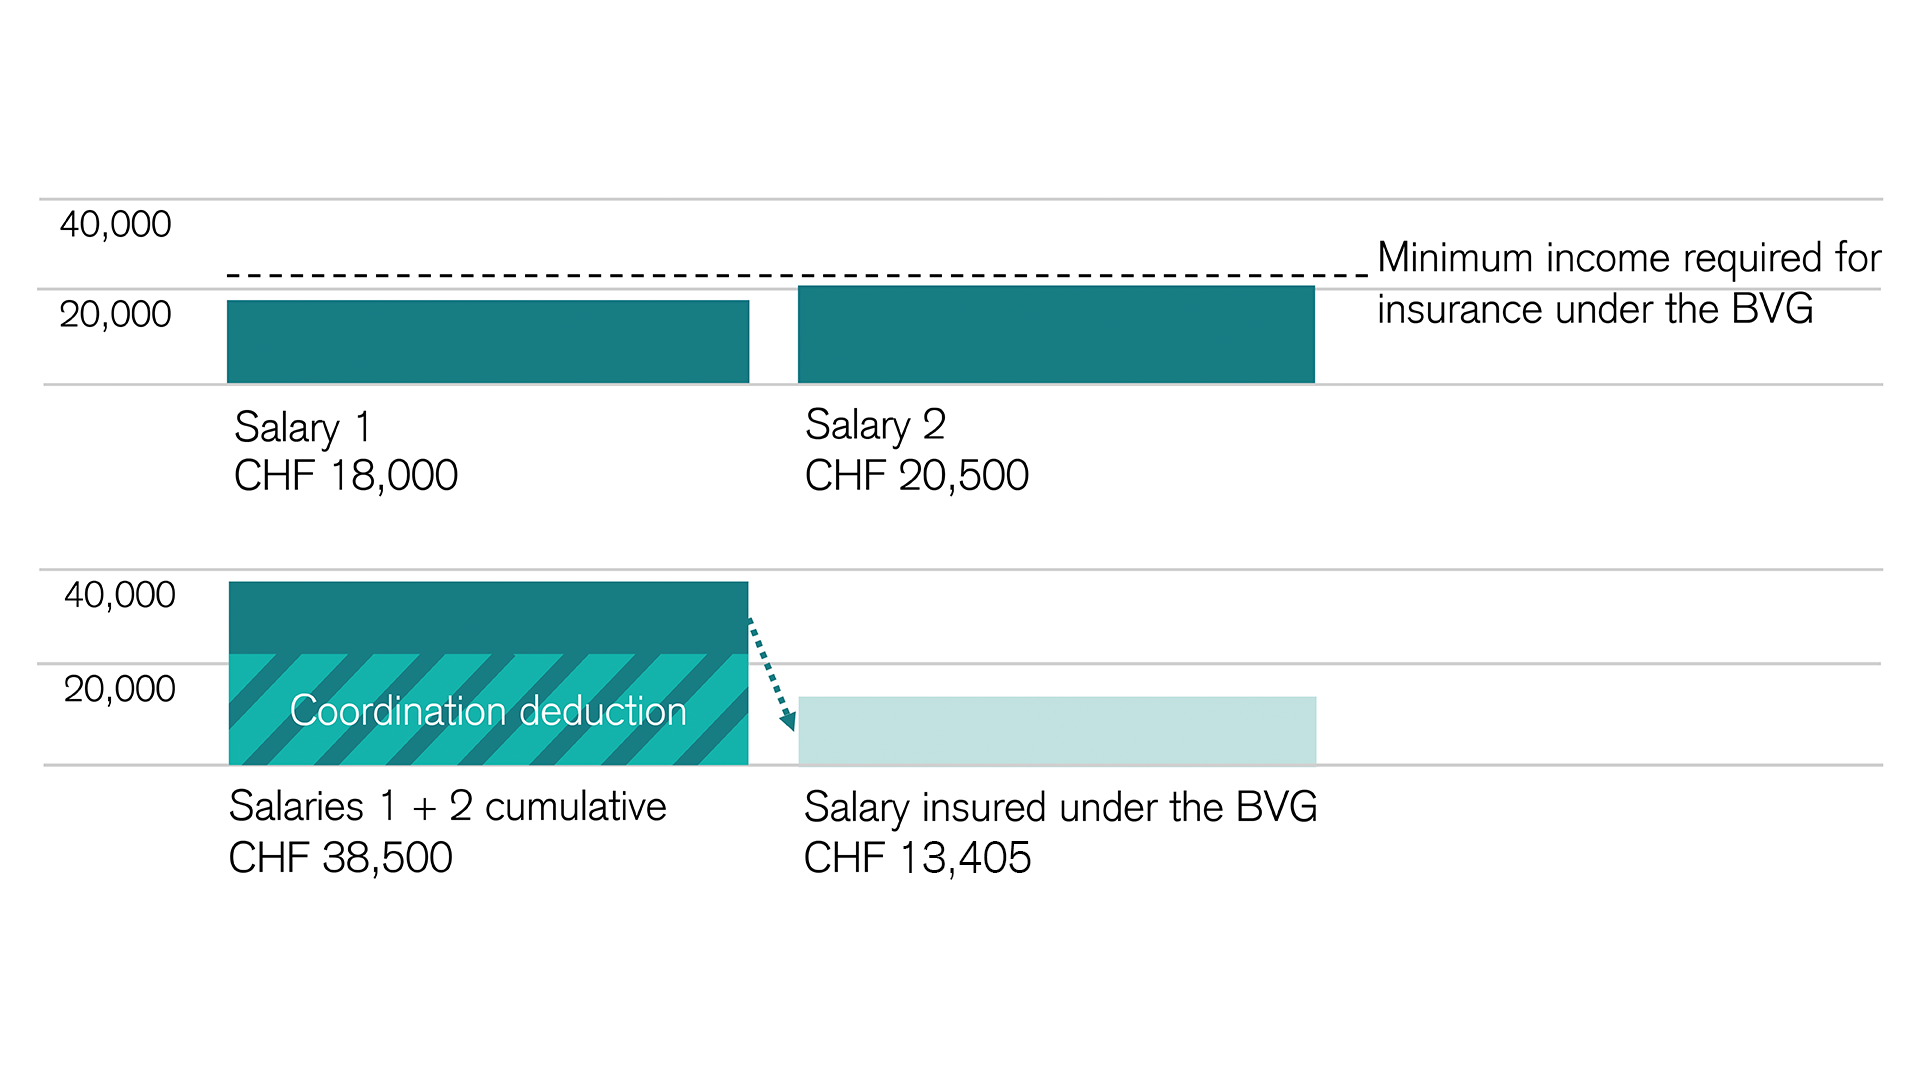 Sample calculation: Two salaries, both below the BVG minimum income required for enrollment